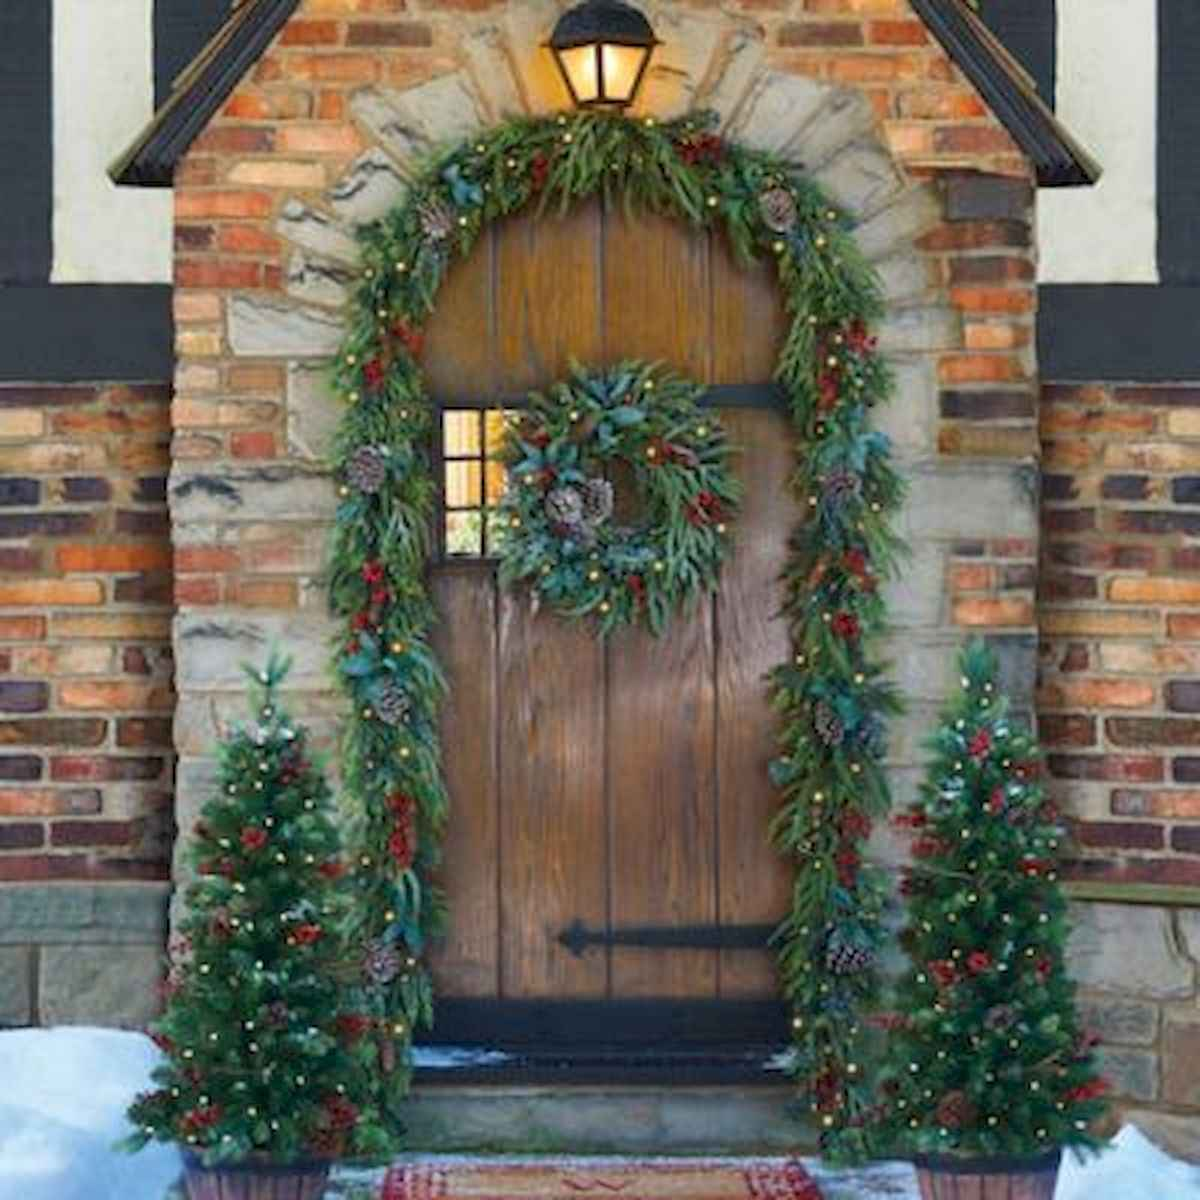 50 stunning front porch christmas lights decorations ideas (4)